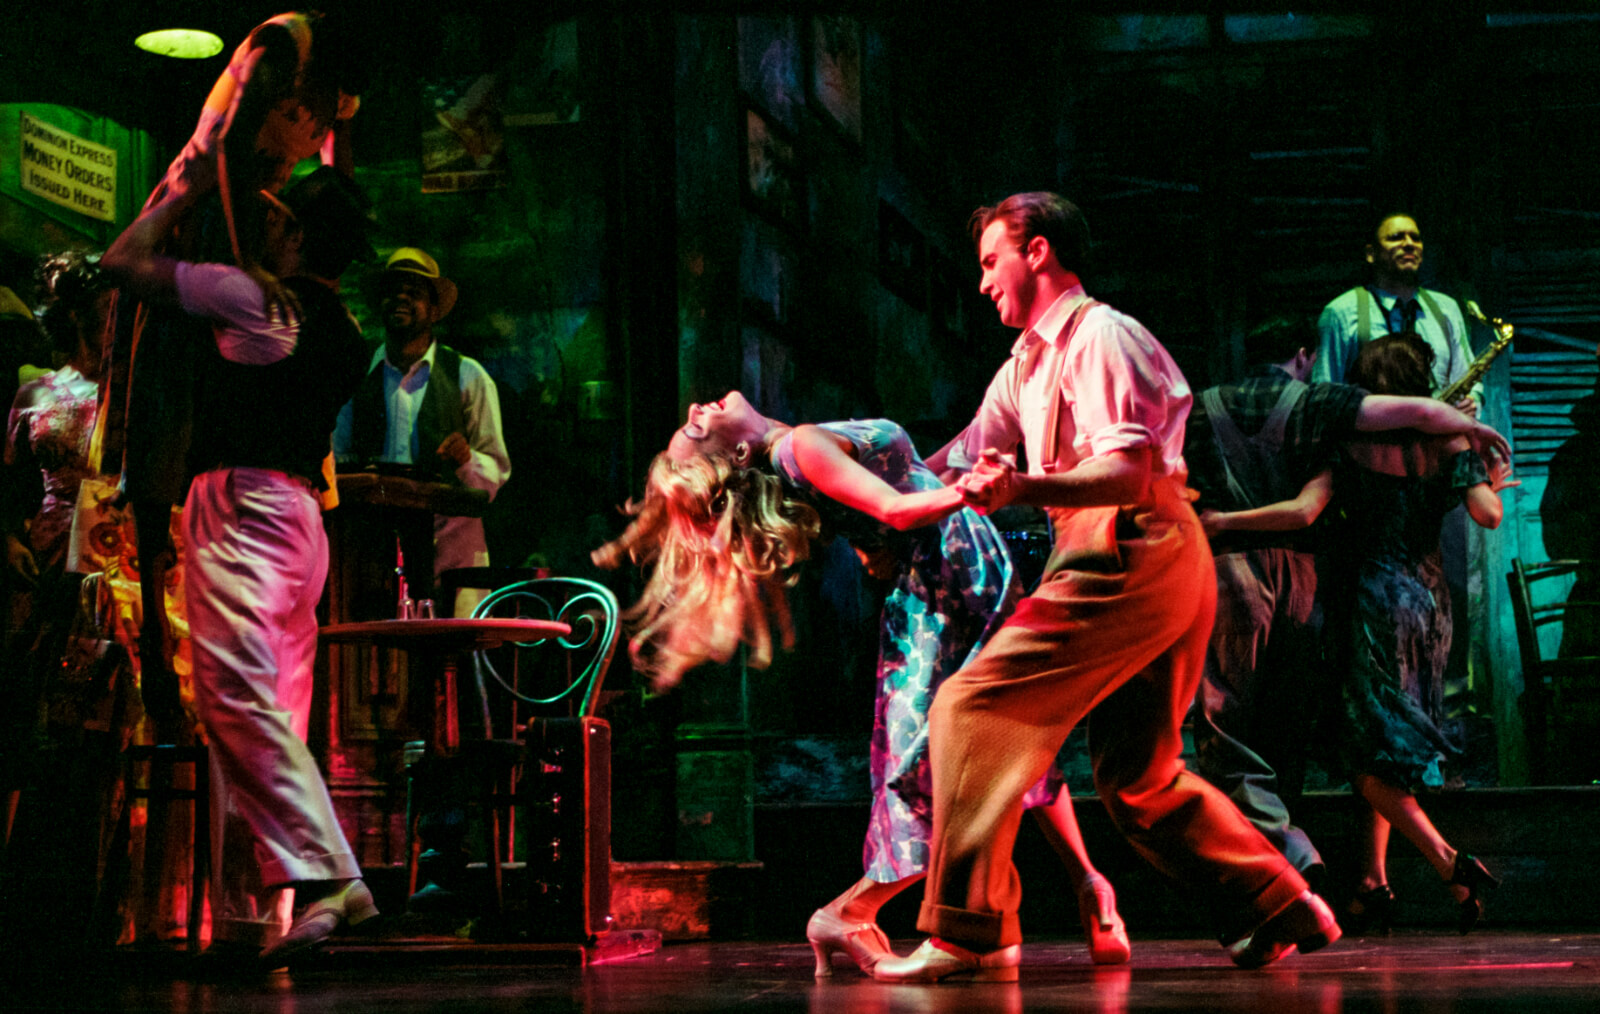 Kelly Severson and Bradley dancing in Thou Shalt Not.